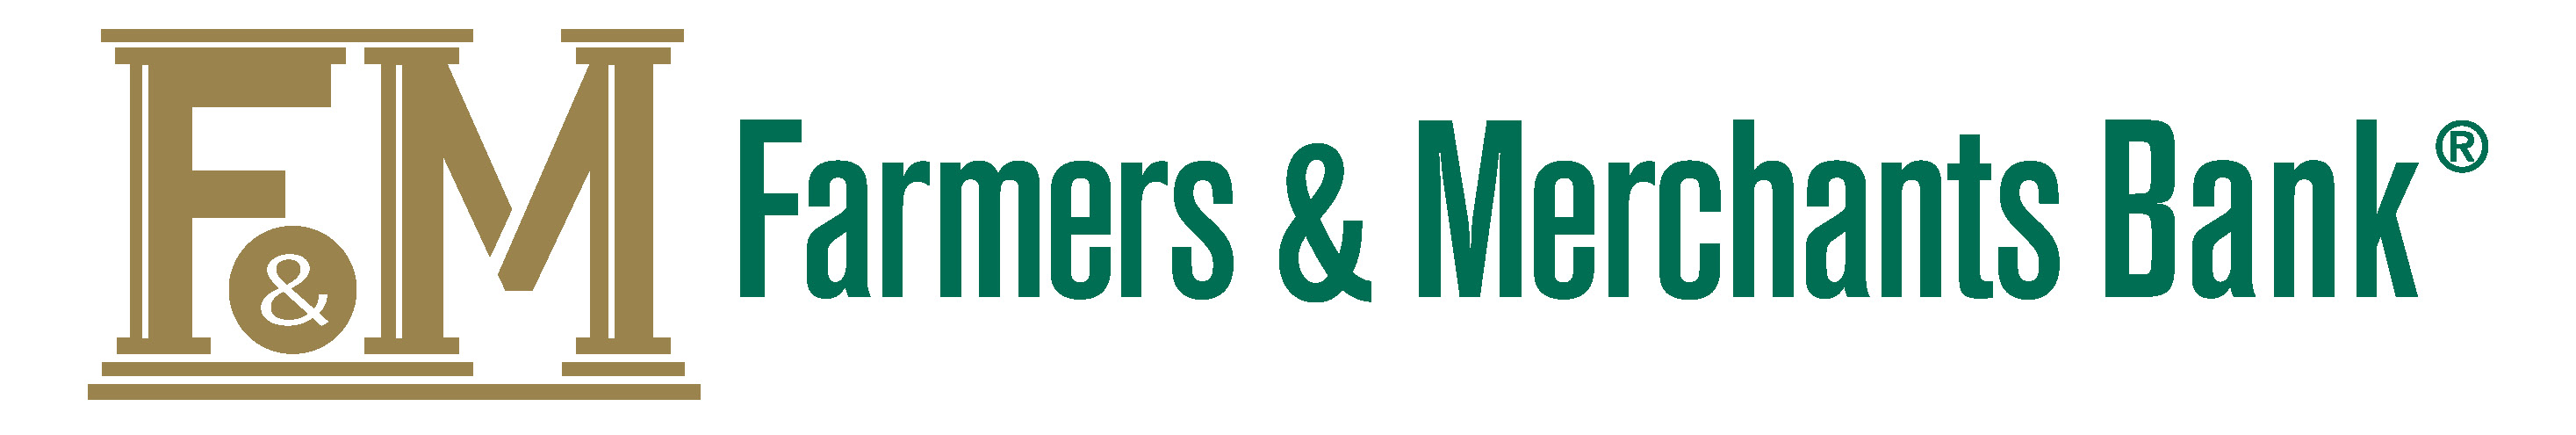 farmers merchants logo converted new